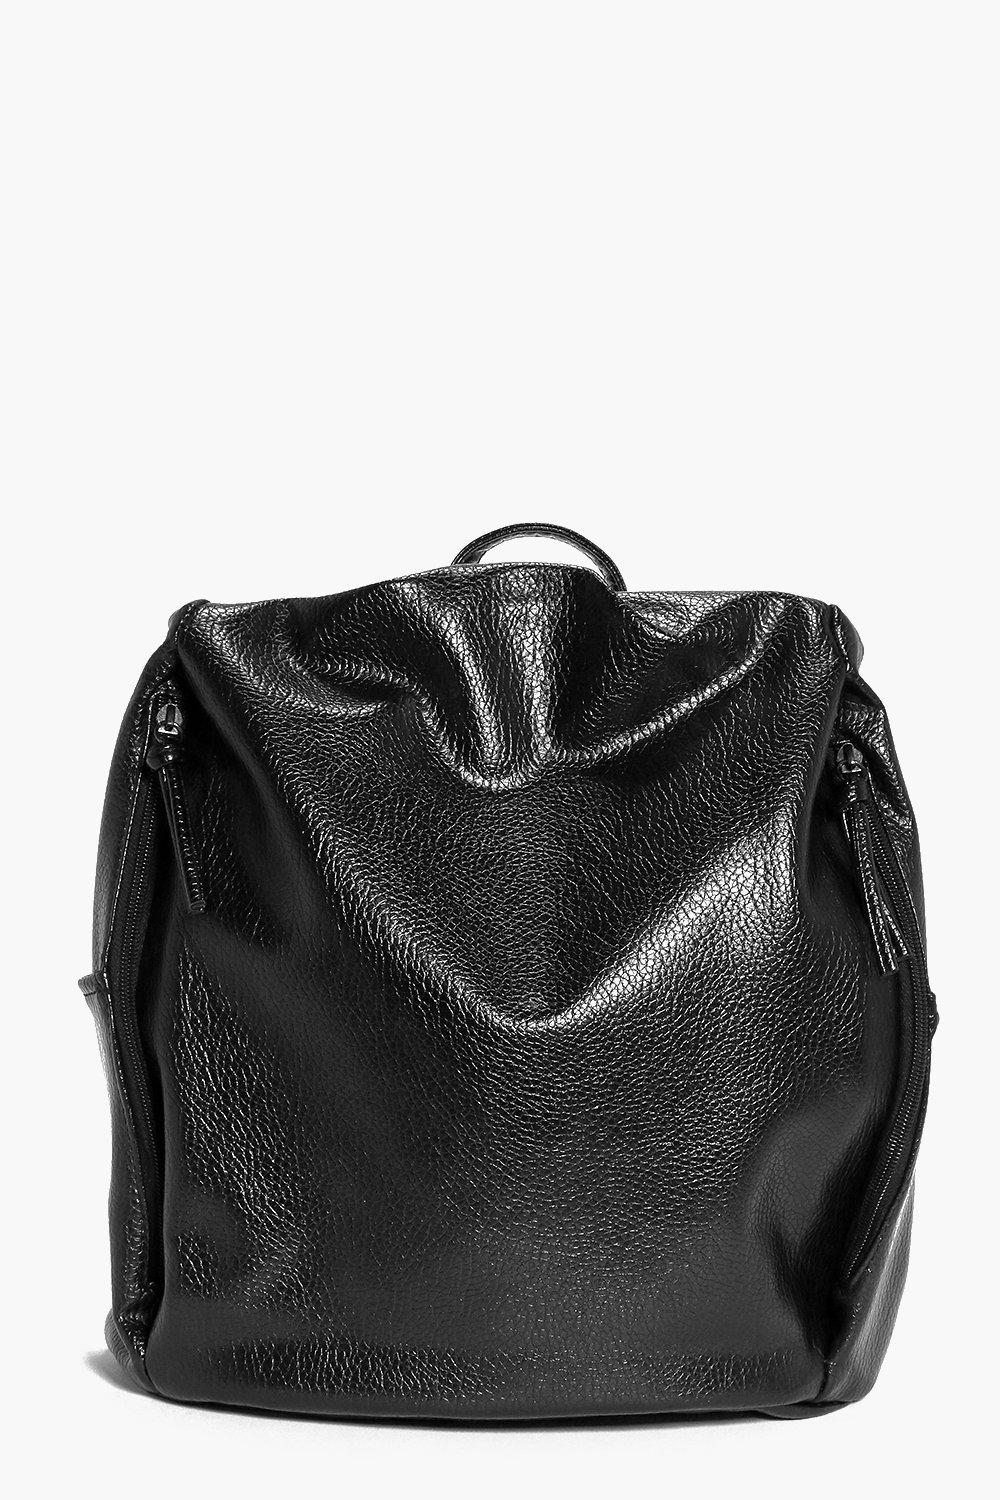 Emilia Simple Side Zip Backpack